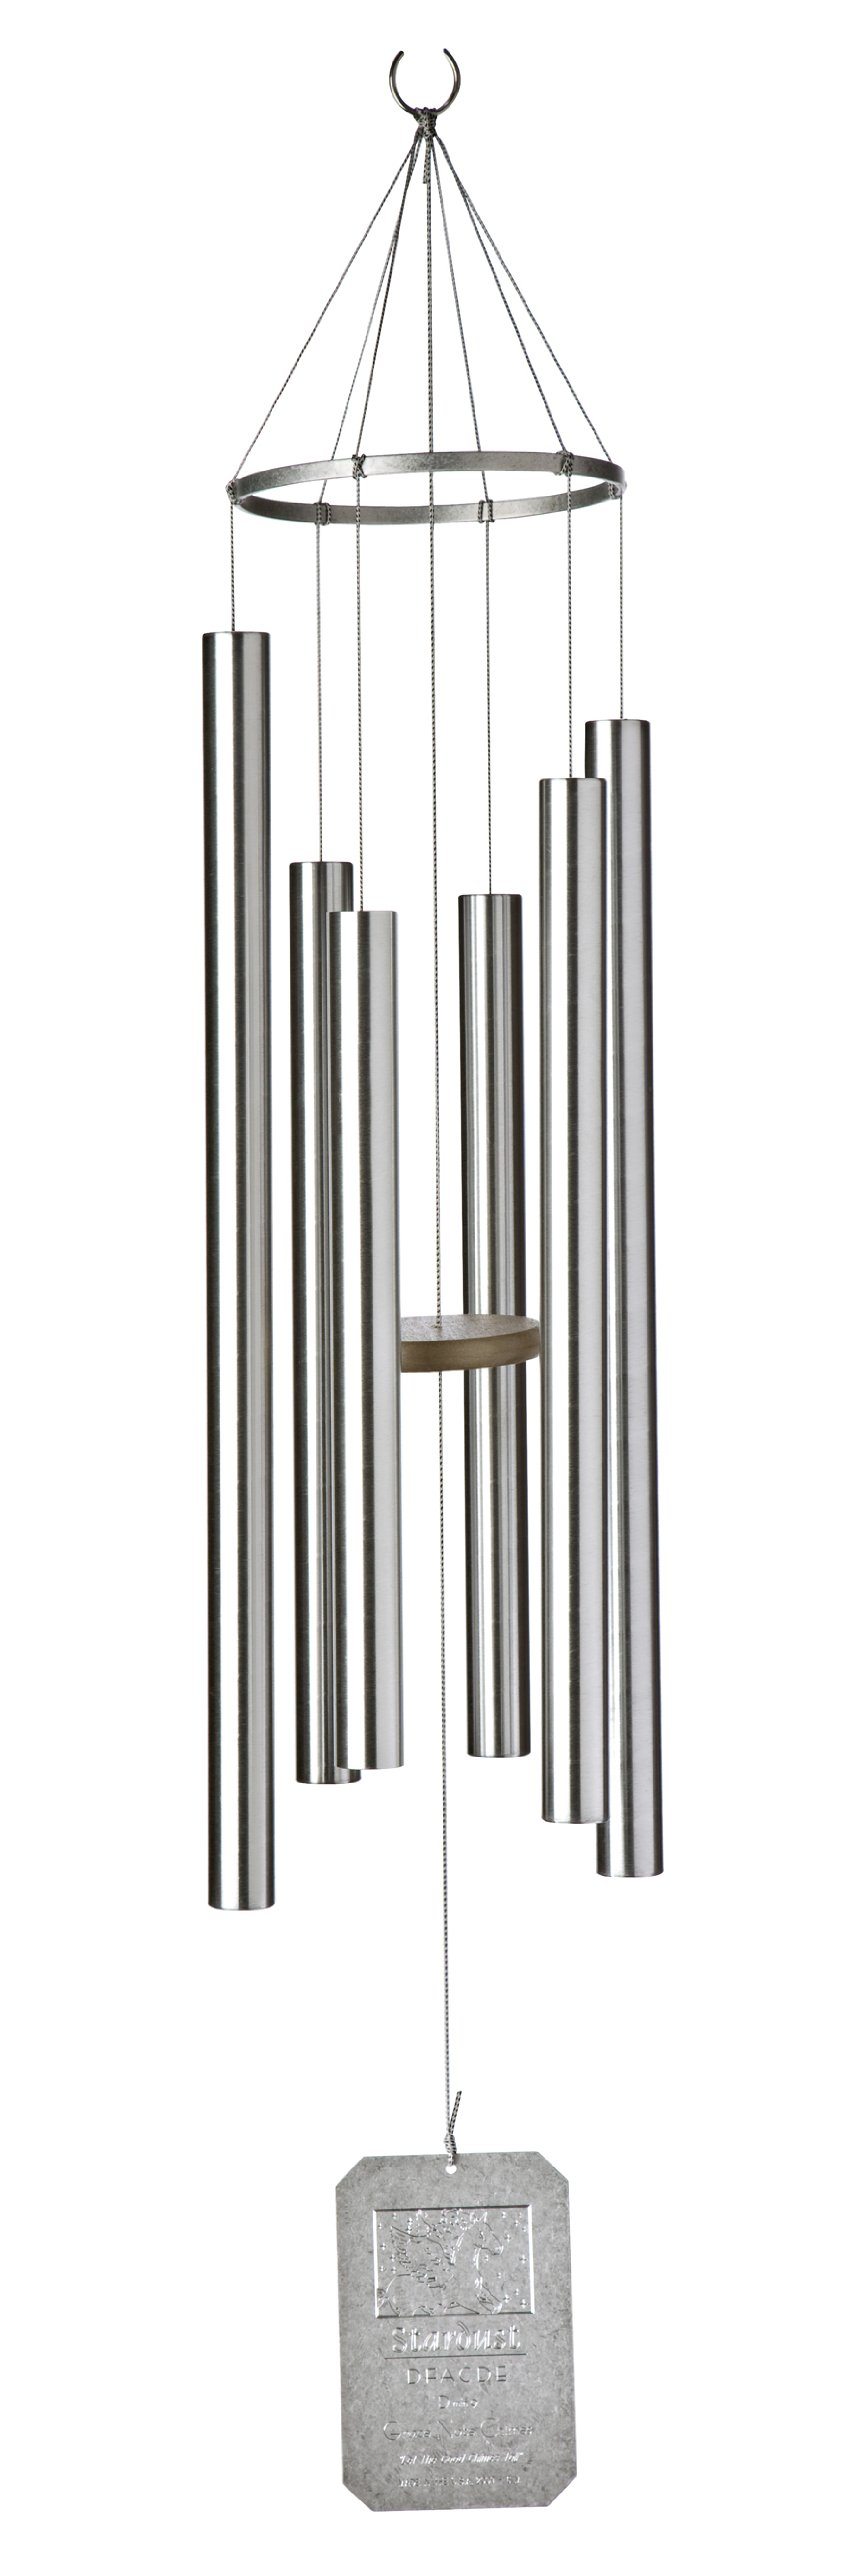 Grace Note Chimes 3M 42-Inch Himalayan Echo Wind Chimes, Medium, Silver